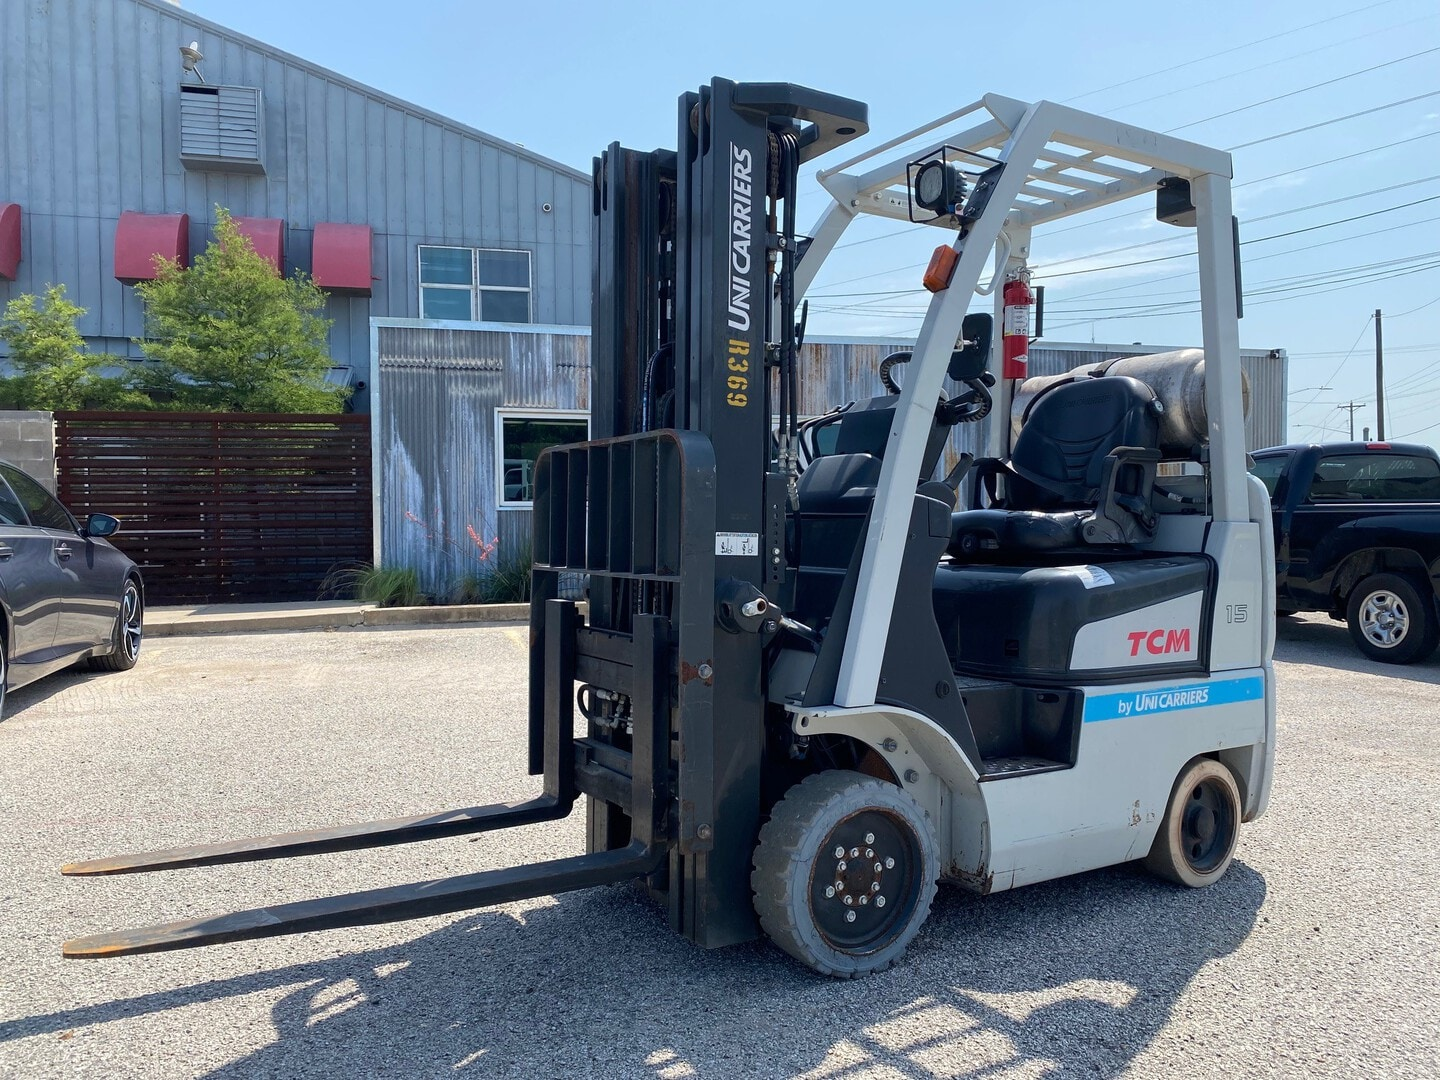 Used, 2015, UniCarriers, FCG15L-A1, Forklifts / Lift Trucks